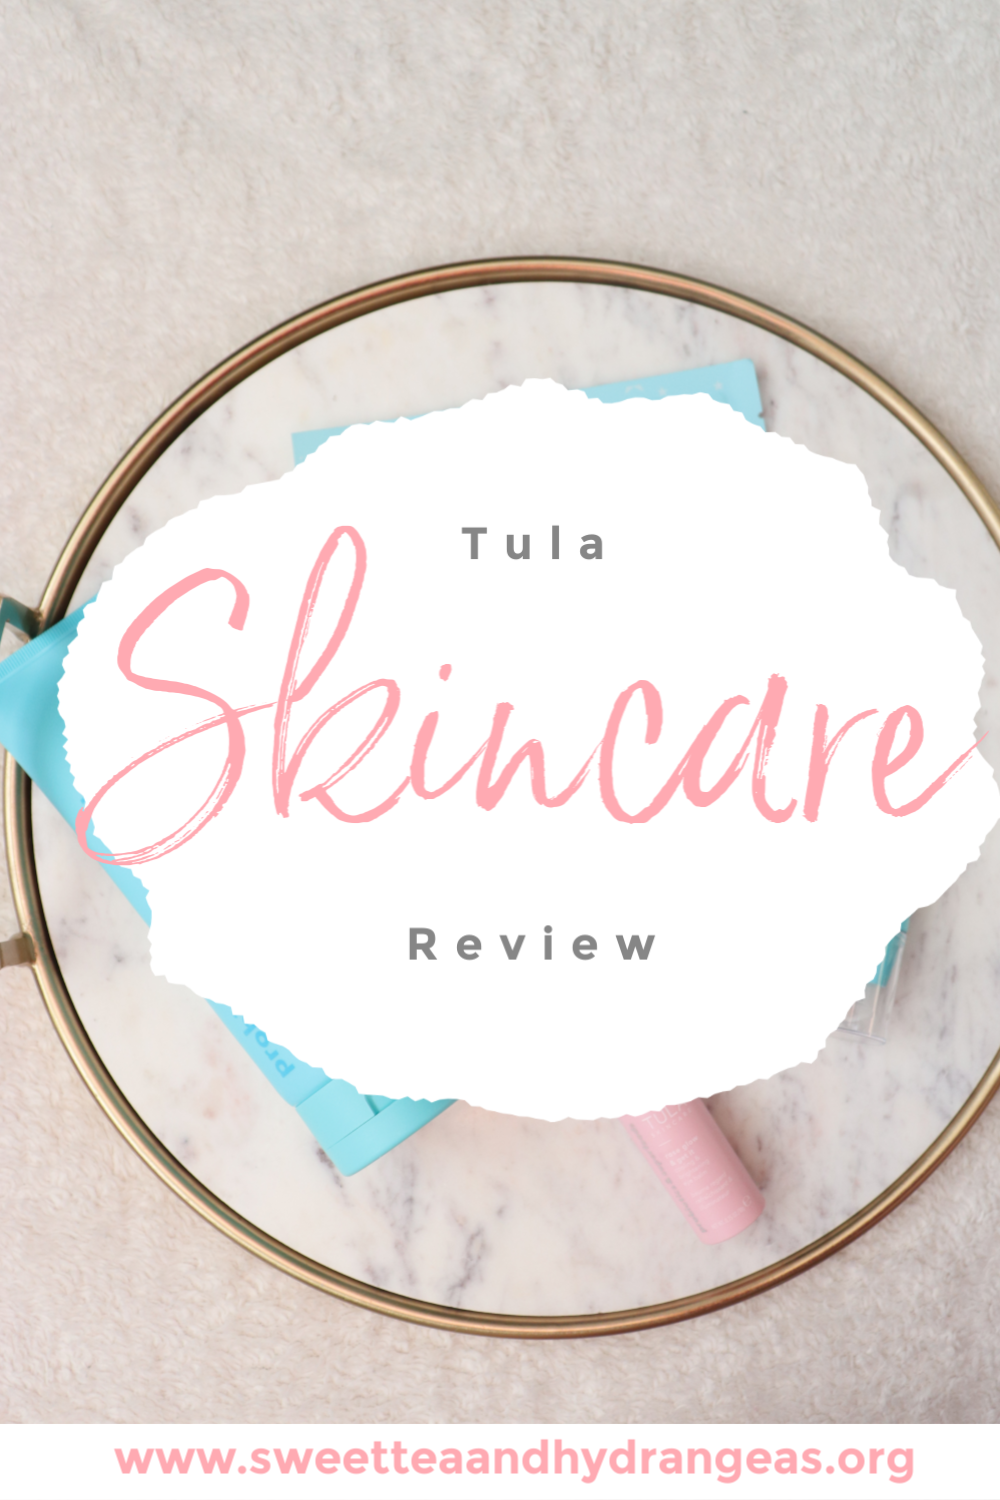 Sweet Tea & Hydrangeas Tula Skincare Review